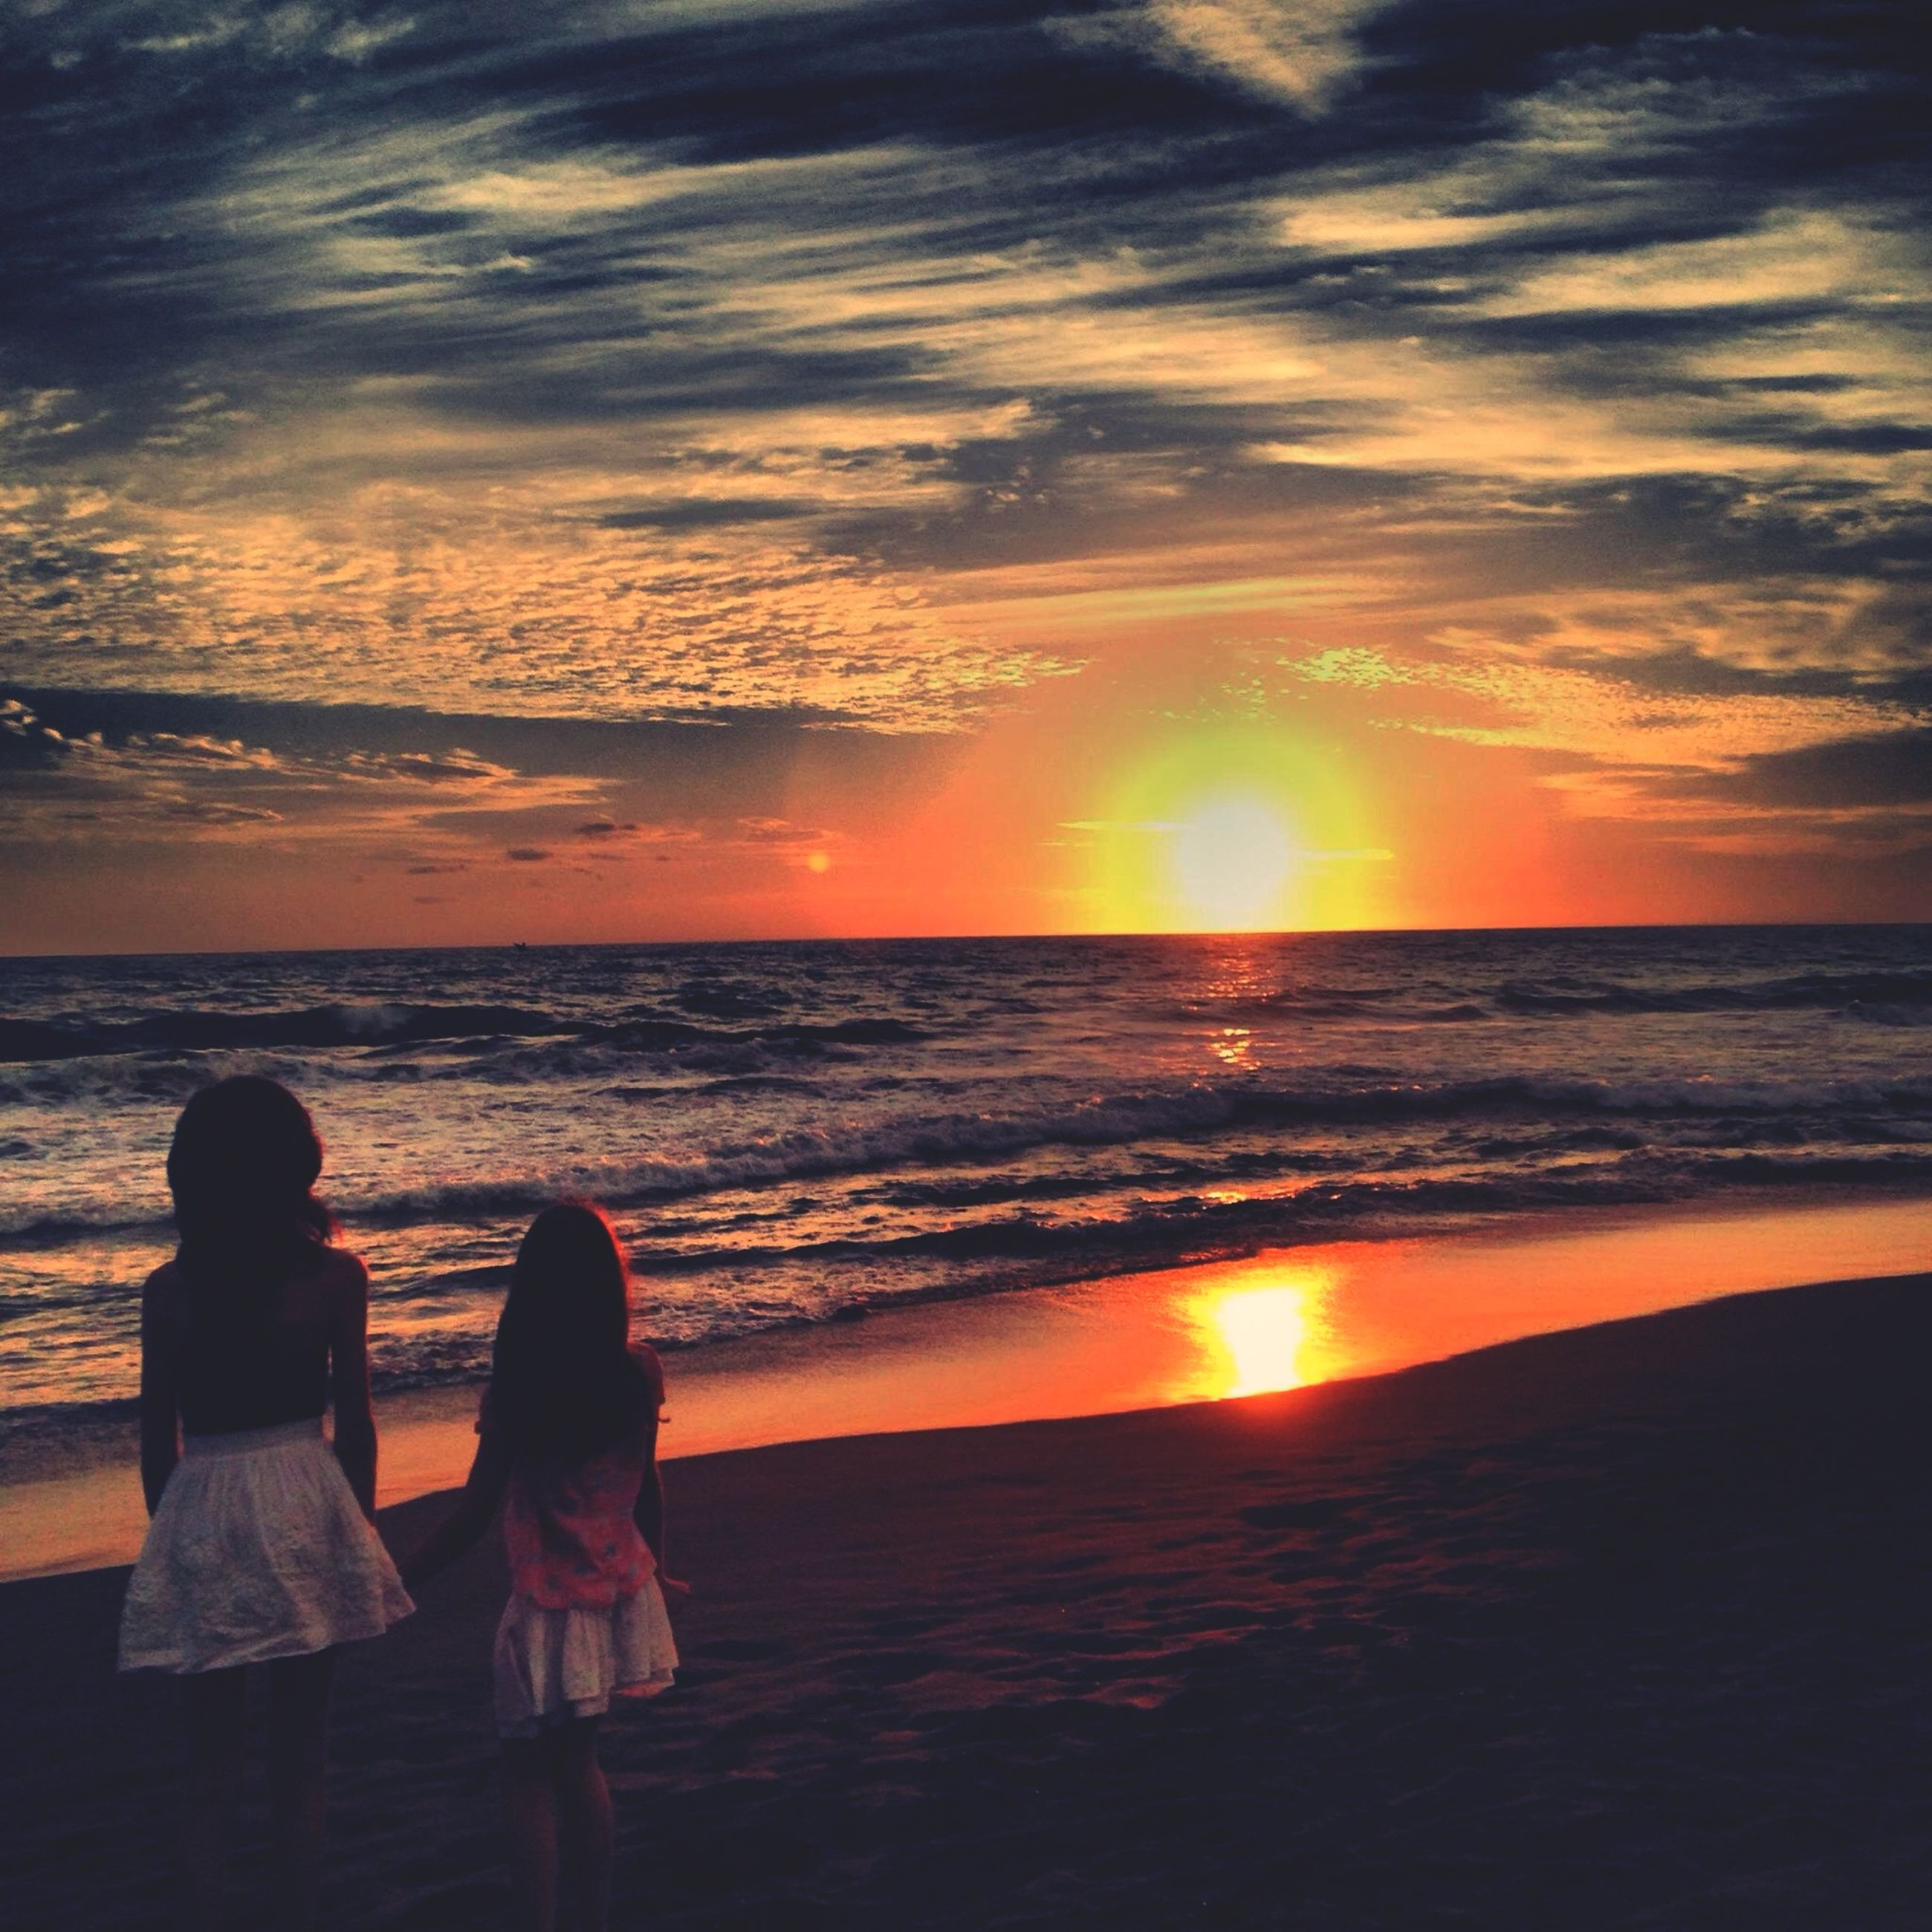 sunset, sea, horizon over water, water, beach, sky, scenics, sun, beauty in nature, lifestyles, leisure activity, tranquil scene, orange color, shore, tranquility, cloud - sky, idyllic, nature, person